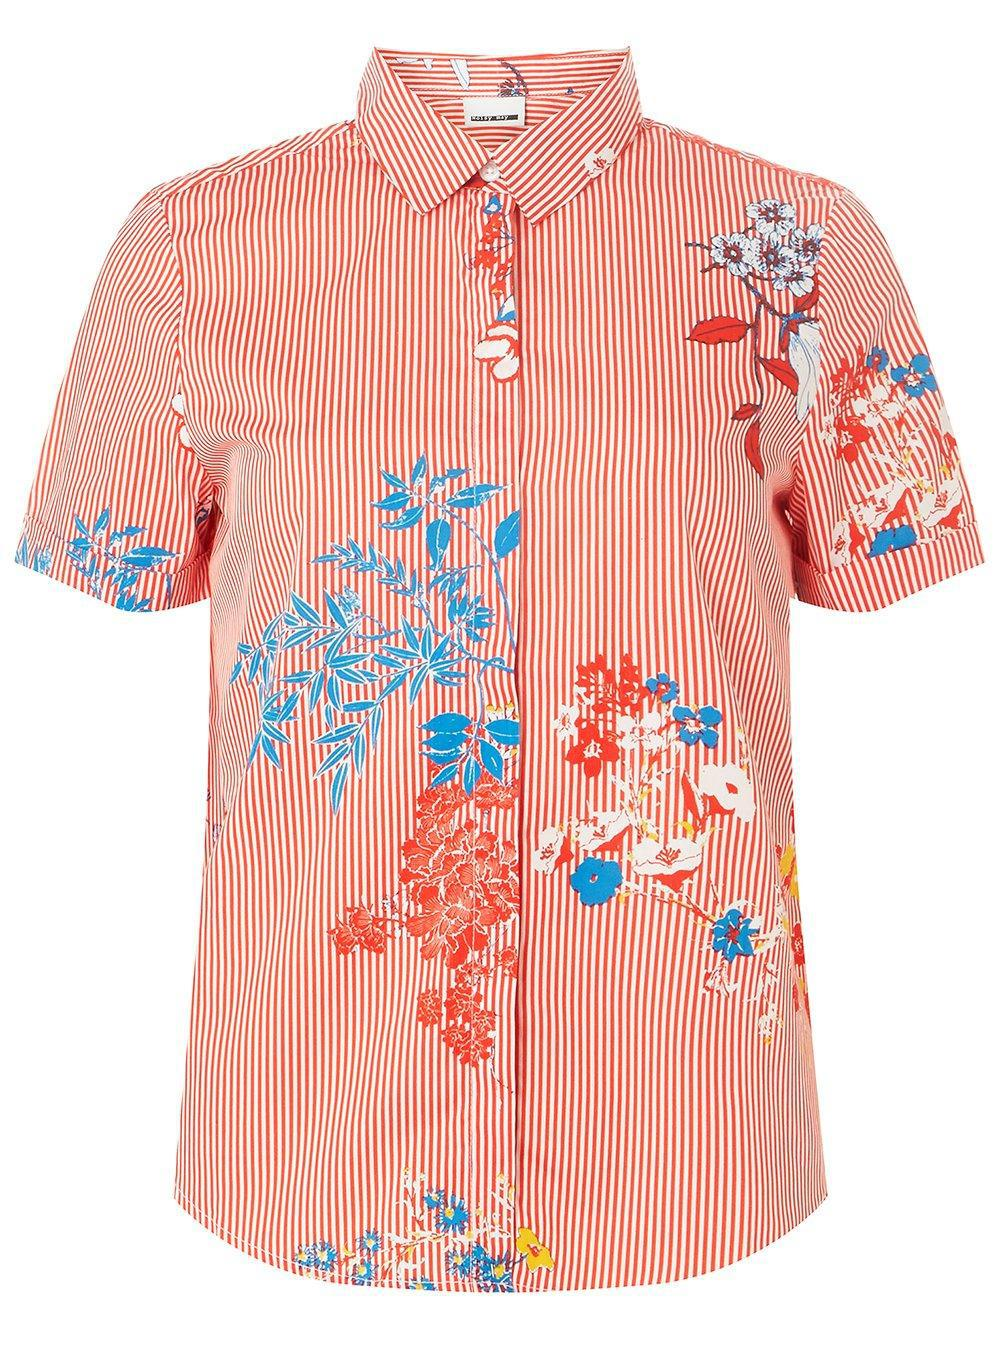 Cheap Price Factory Outlet Dorothy Perkins Womens **Noisy May Printed Shirt- Limited New Clearance Best Store To Get GX8W9a6LW5